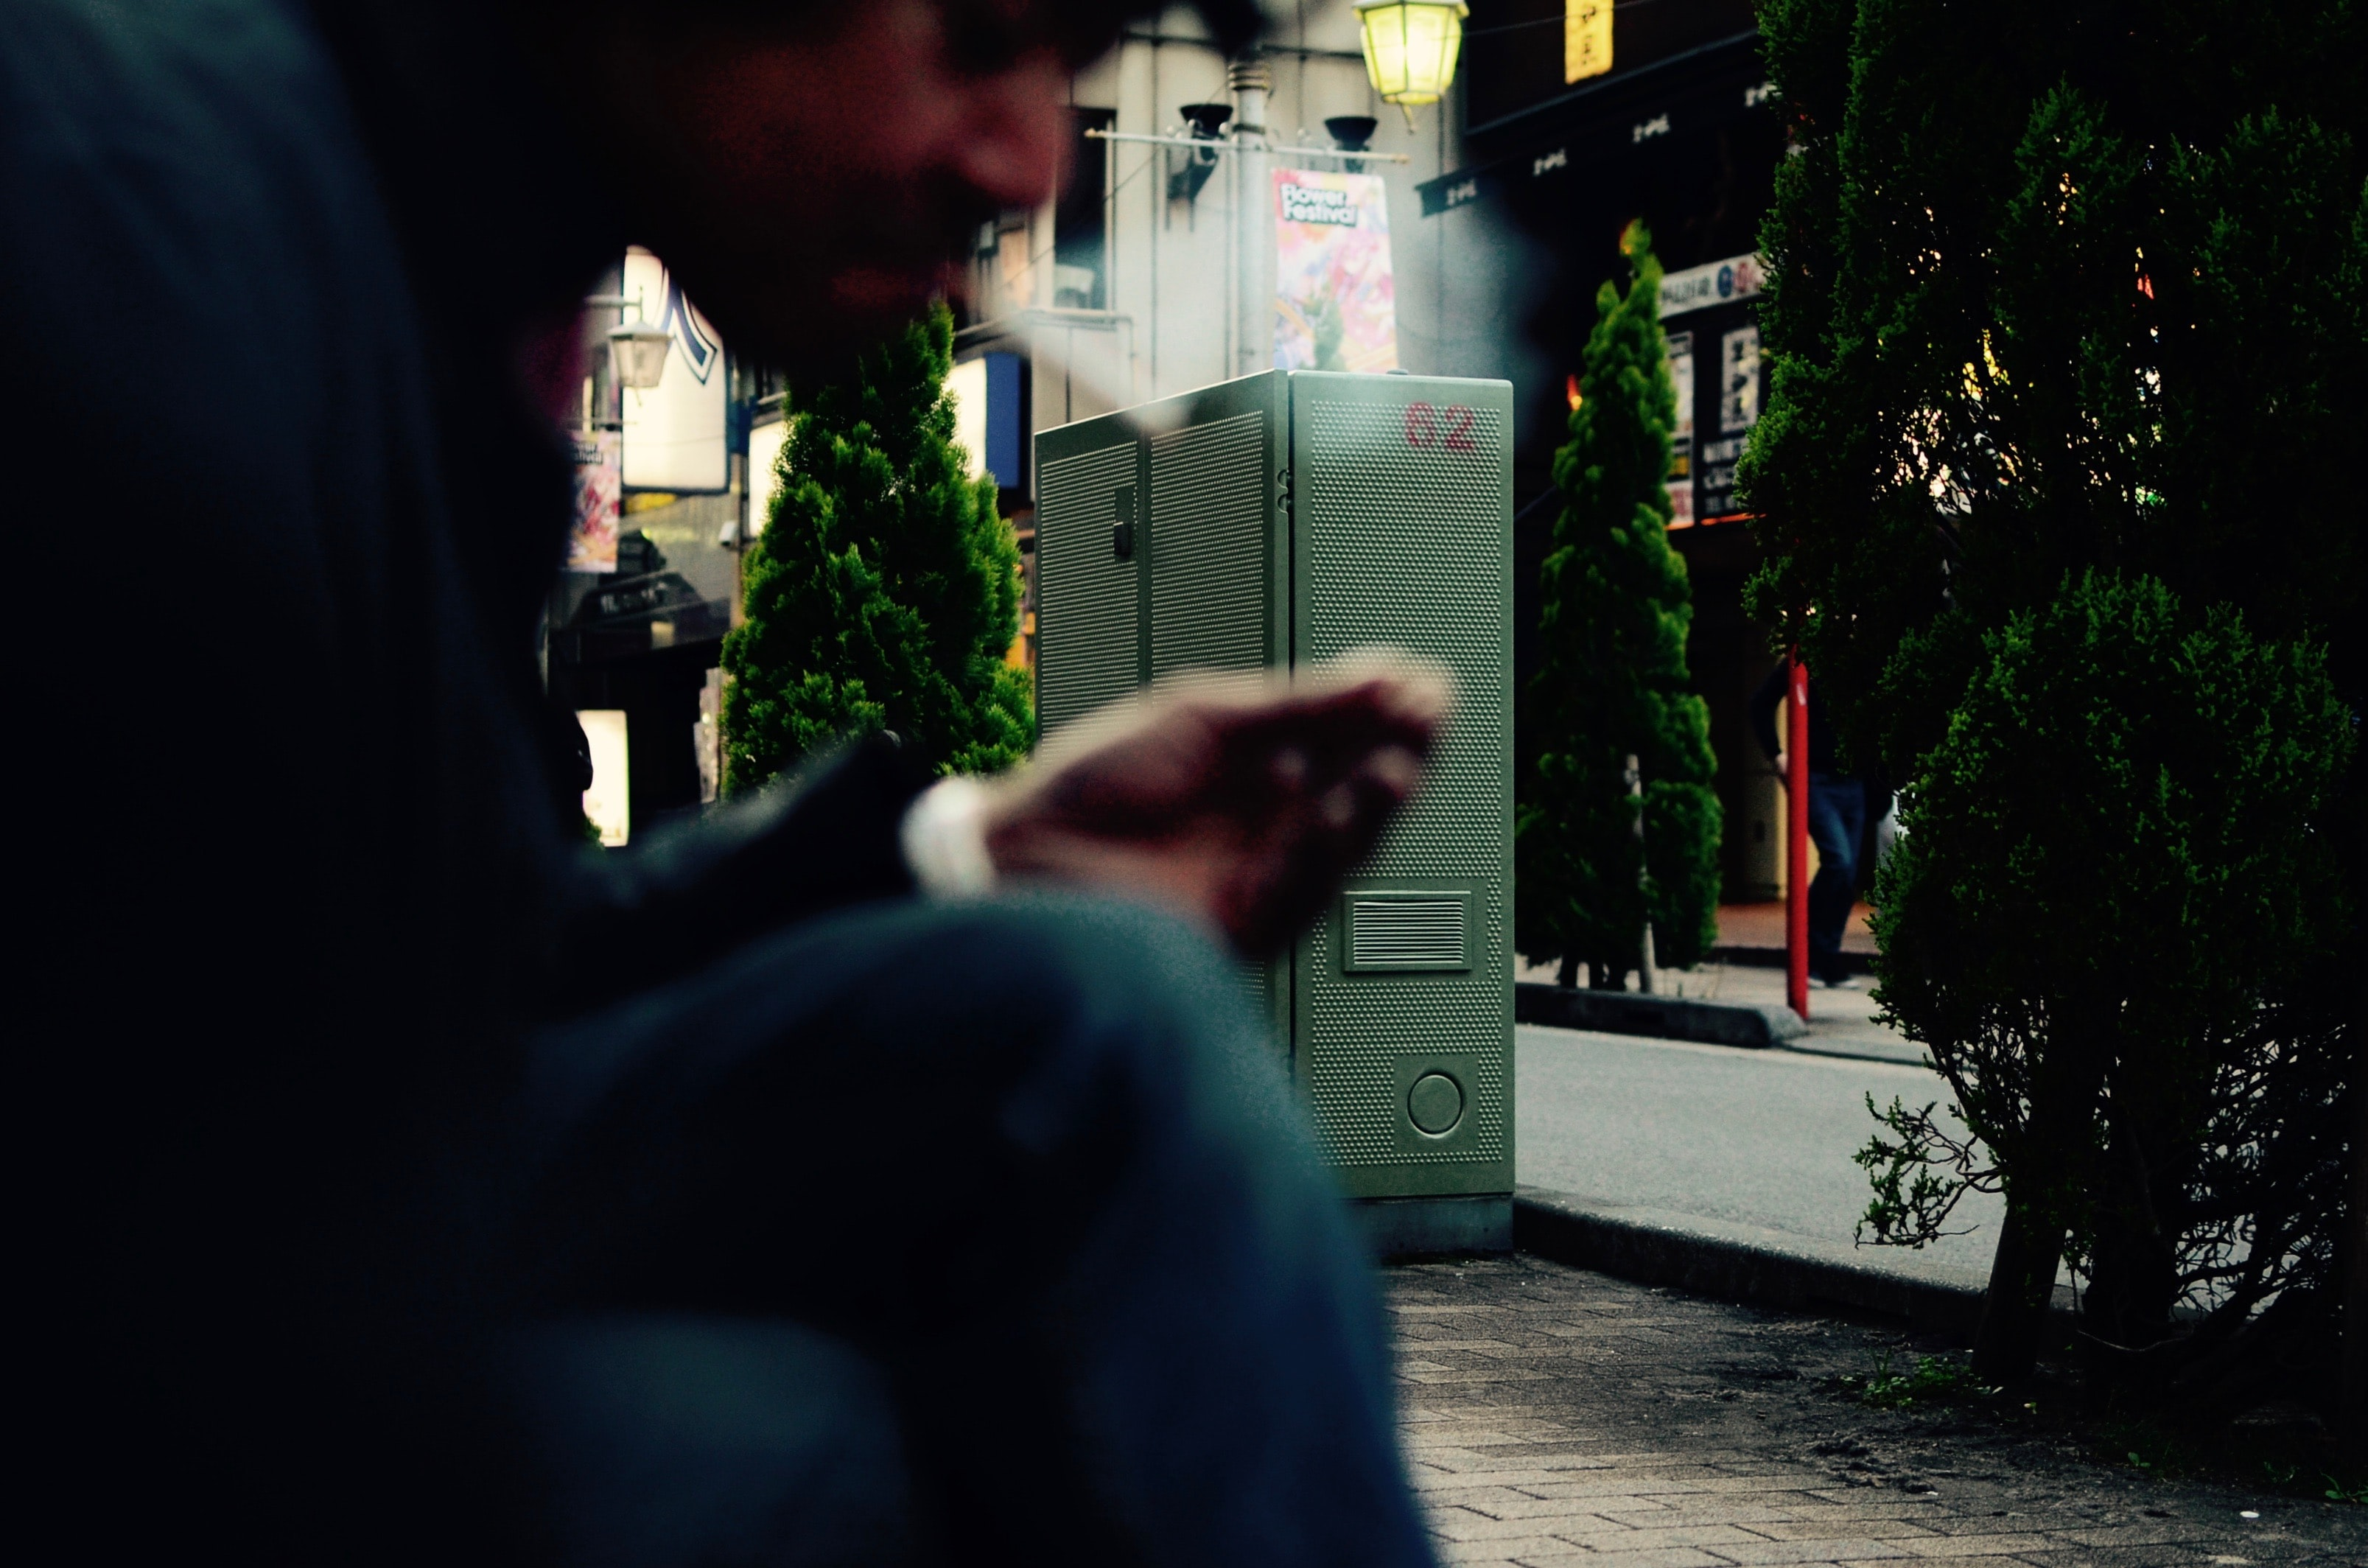 A bearded man puffing a cigarette in the foreground with a numbered generator in the background on a street flanked by stores and trees